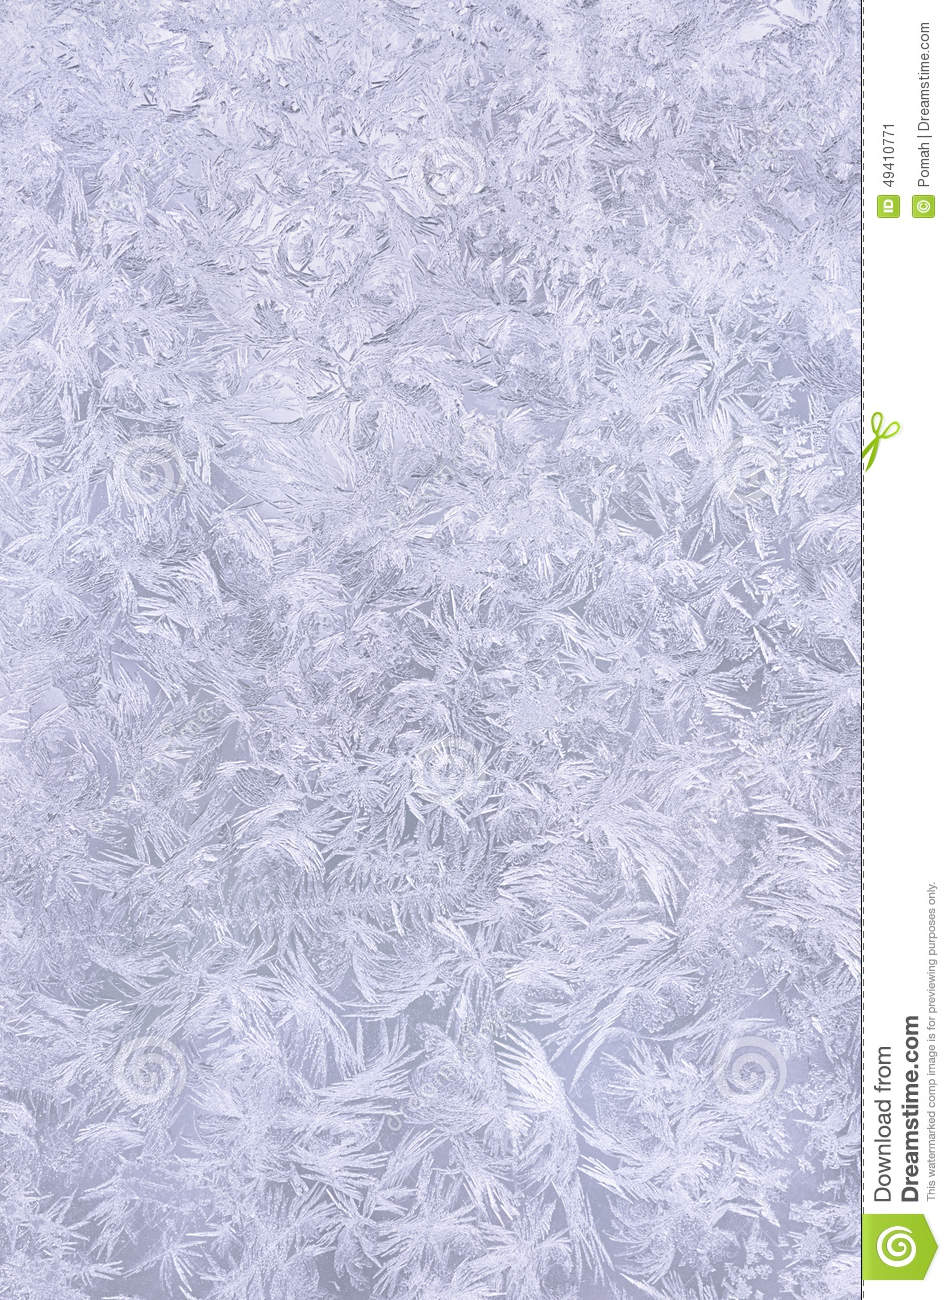 [PHOTOGRAPHY] Snowflakes by Alexey Kljatov - ART FOR YOUR ... |Real Snowflakes Background